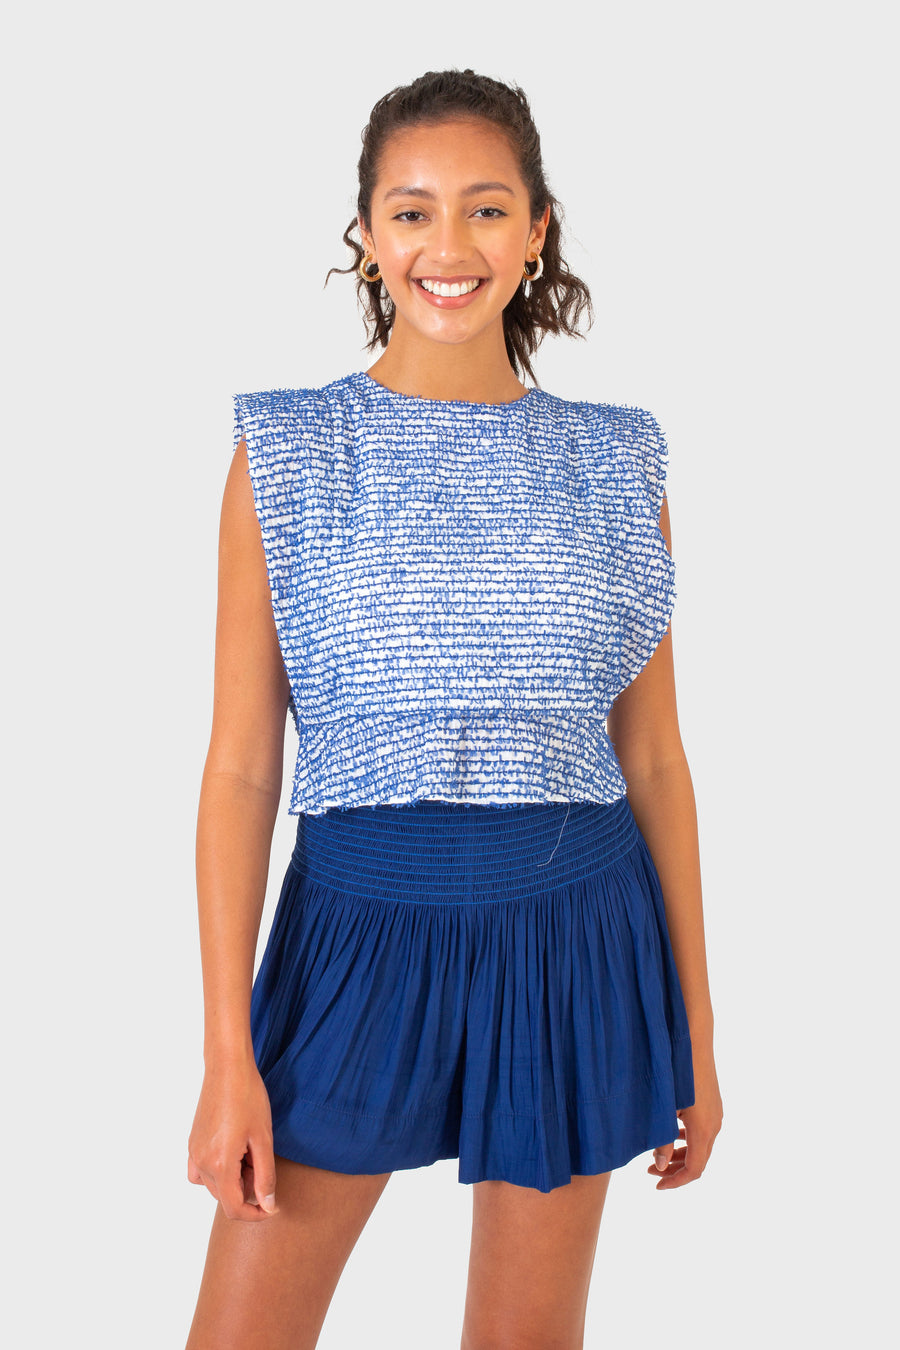 WREN TOP BLUE FRINGE *LIMITED*EDITION*